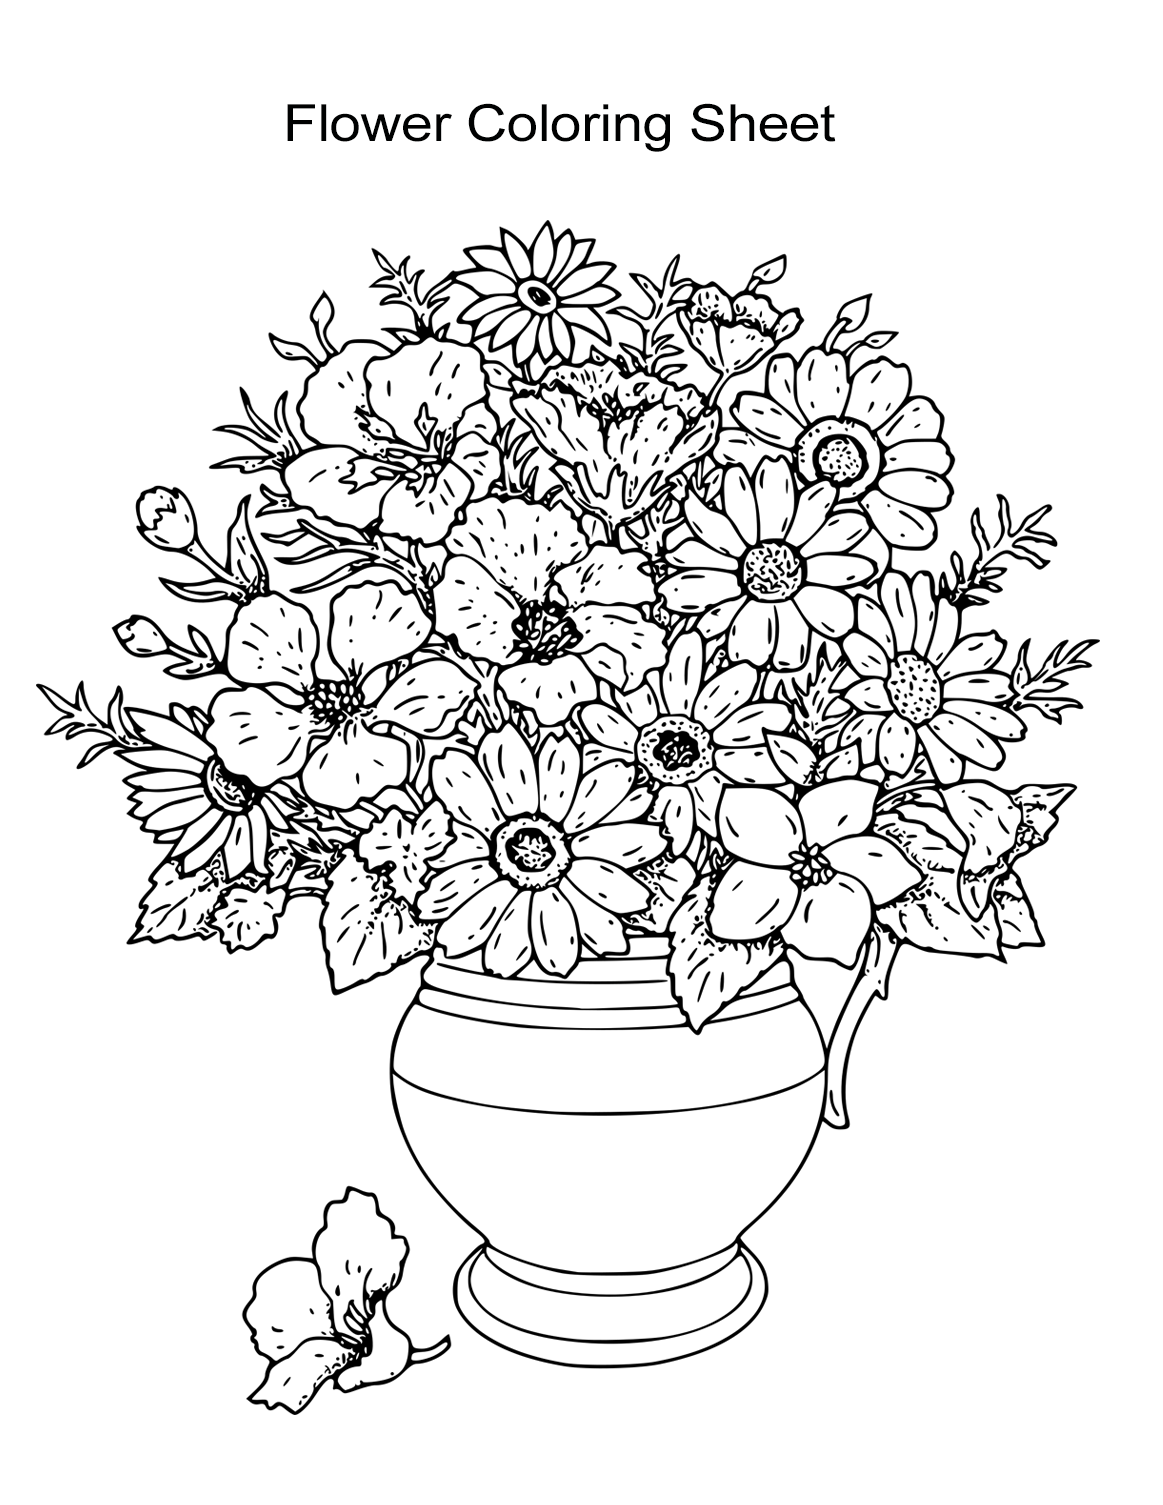 flower coloring pages for girls flower coloring pages for girls 10 and up coloring home coloring flower girls pages for